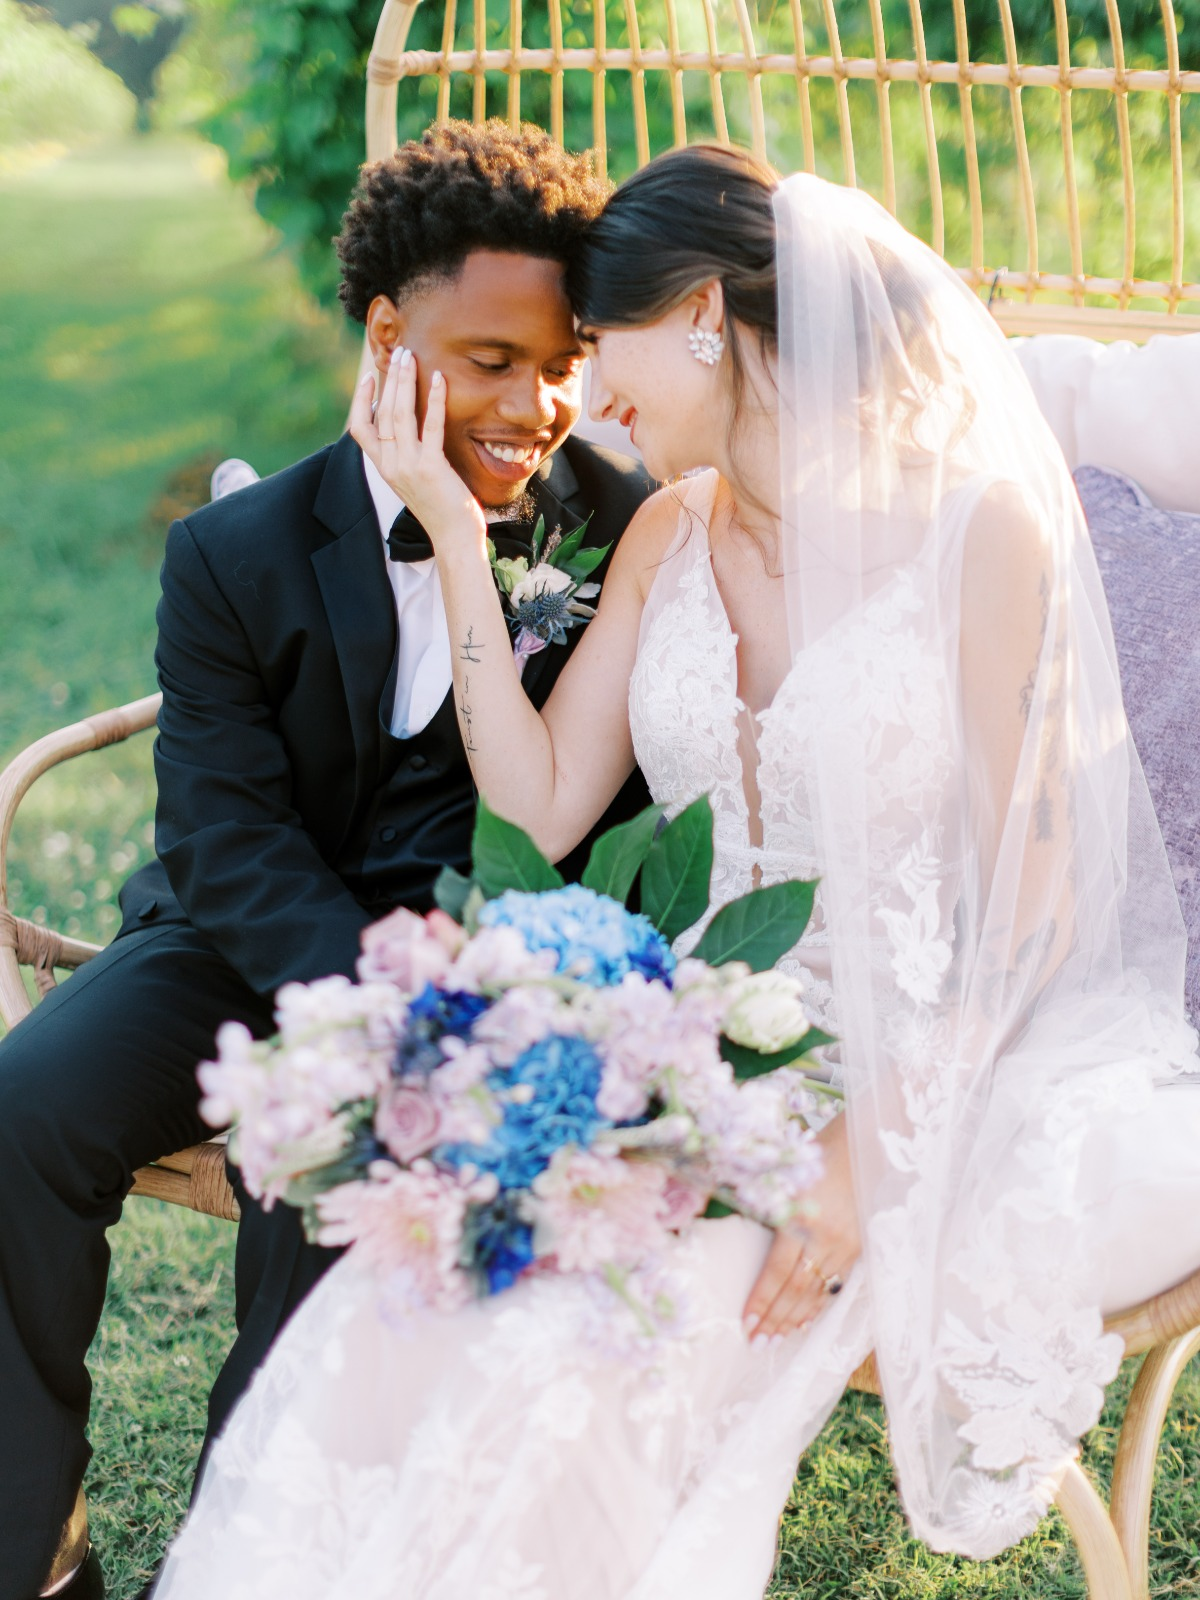 This Wedding Inspiration Shoot Is A Foodie's Dream